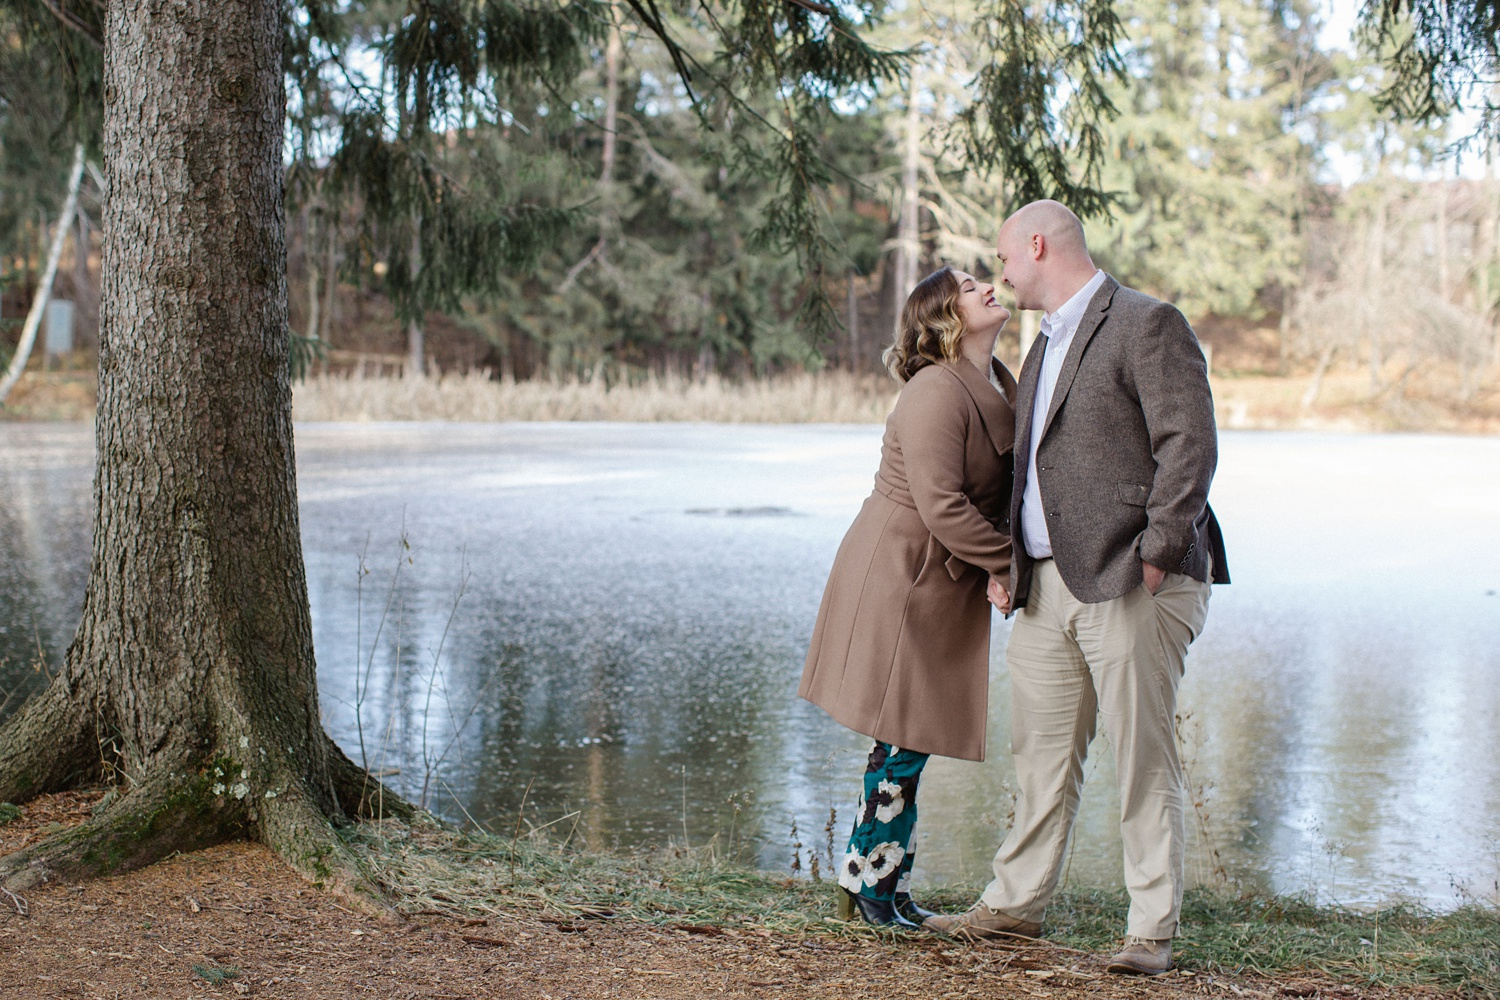 Clarks Summit PA Engagement Session Anniversary Photos_0010.jpg